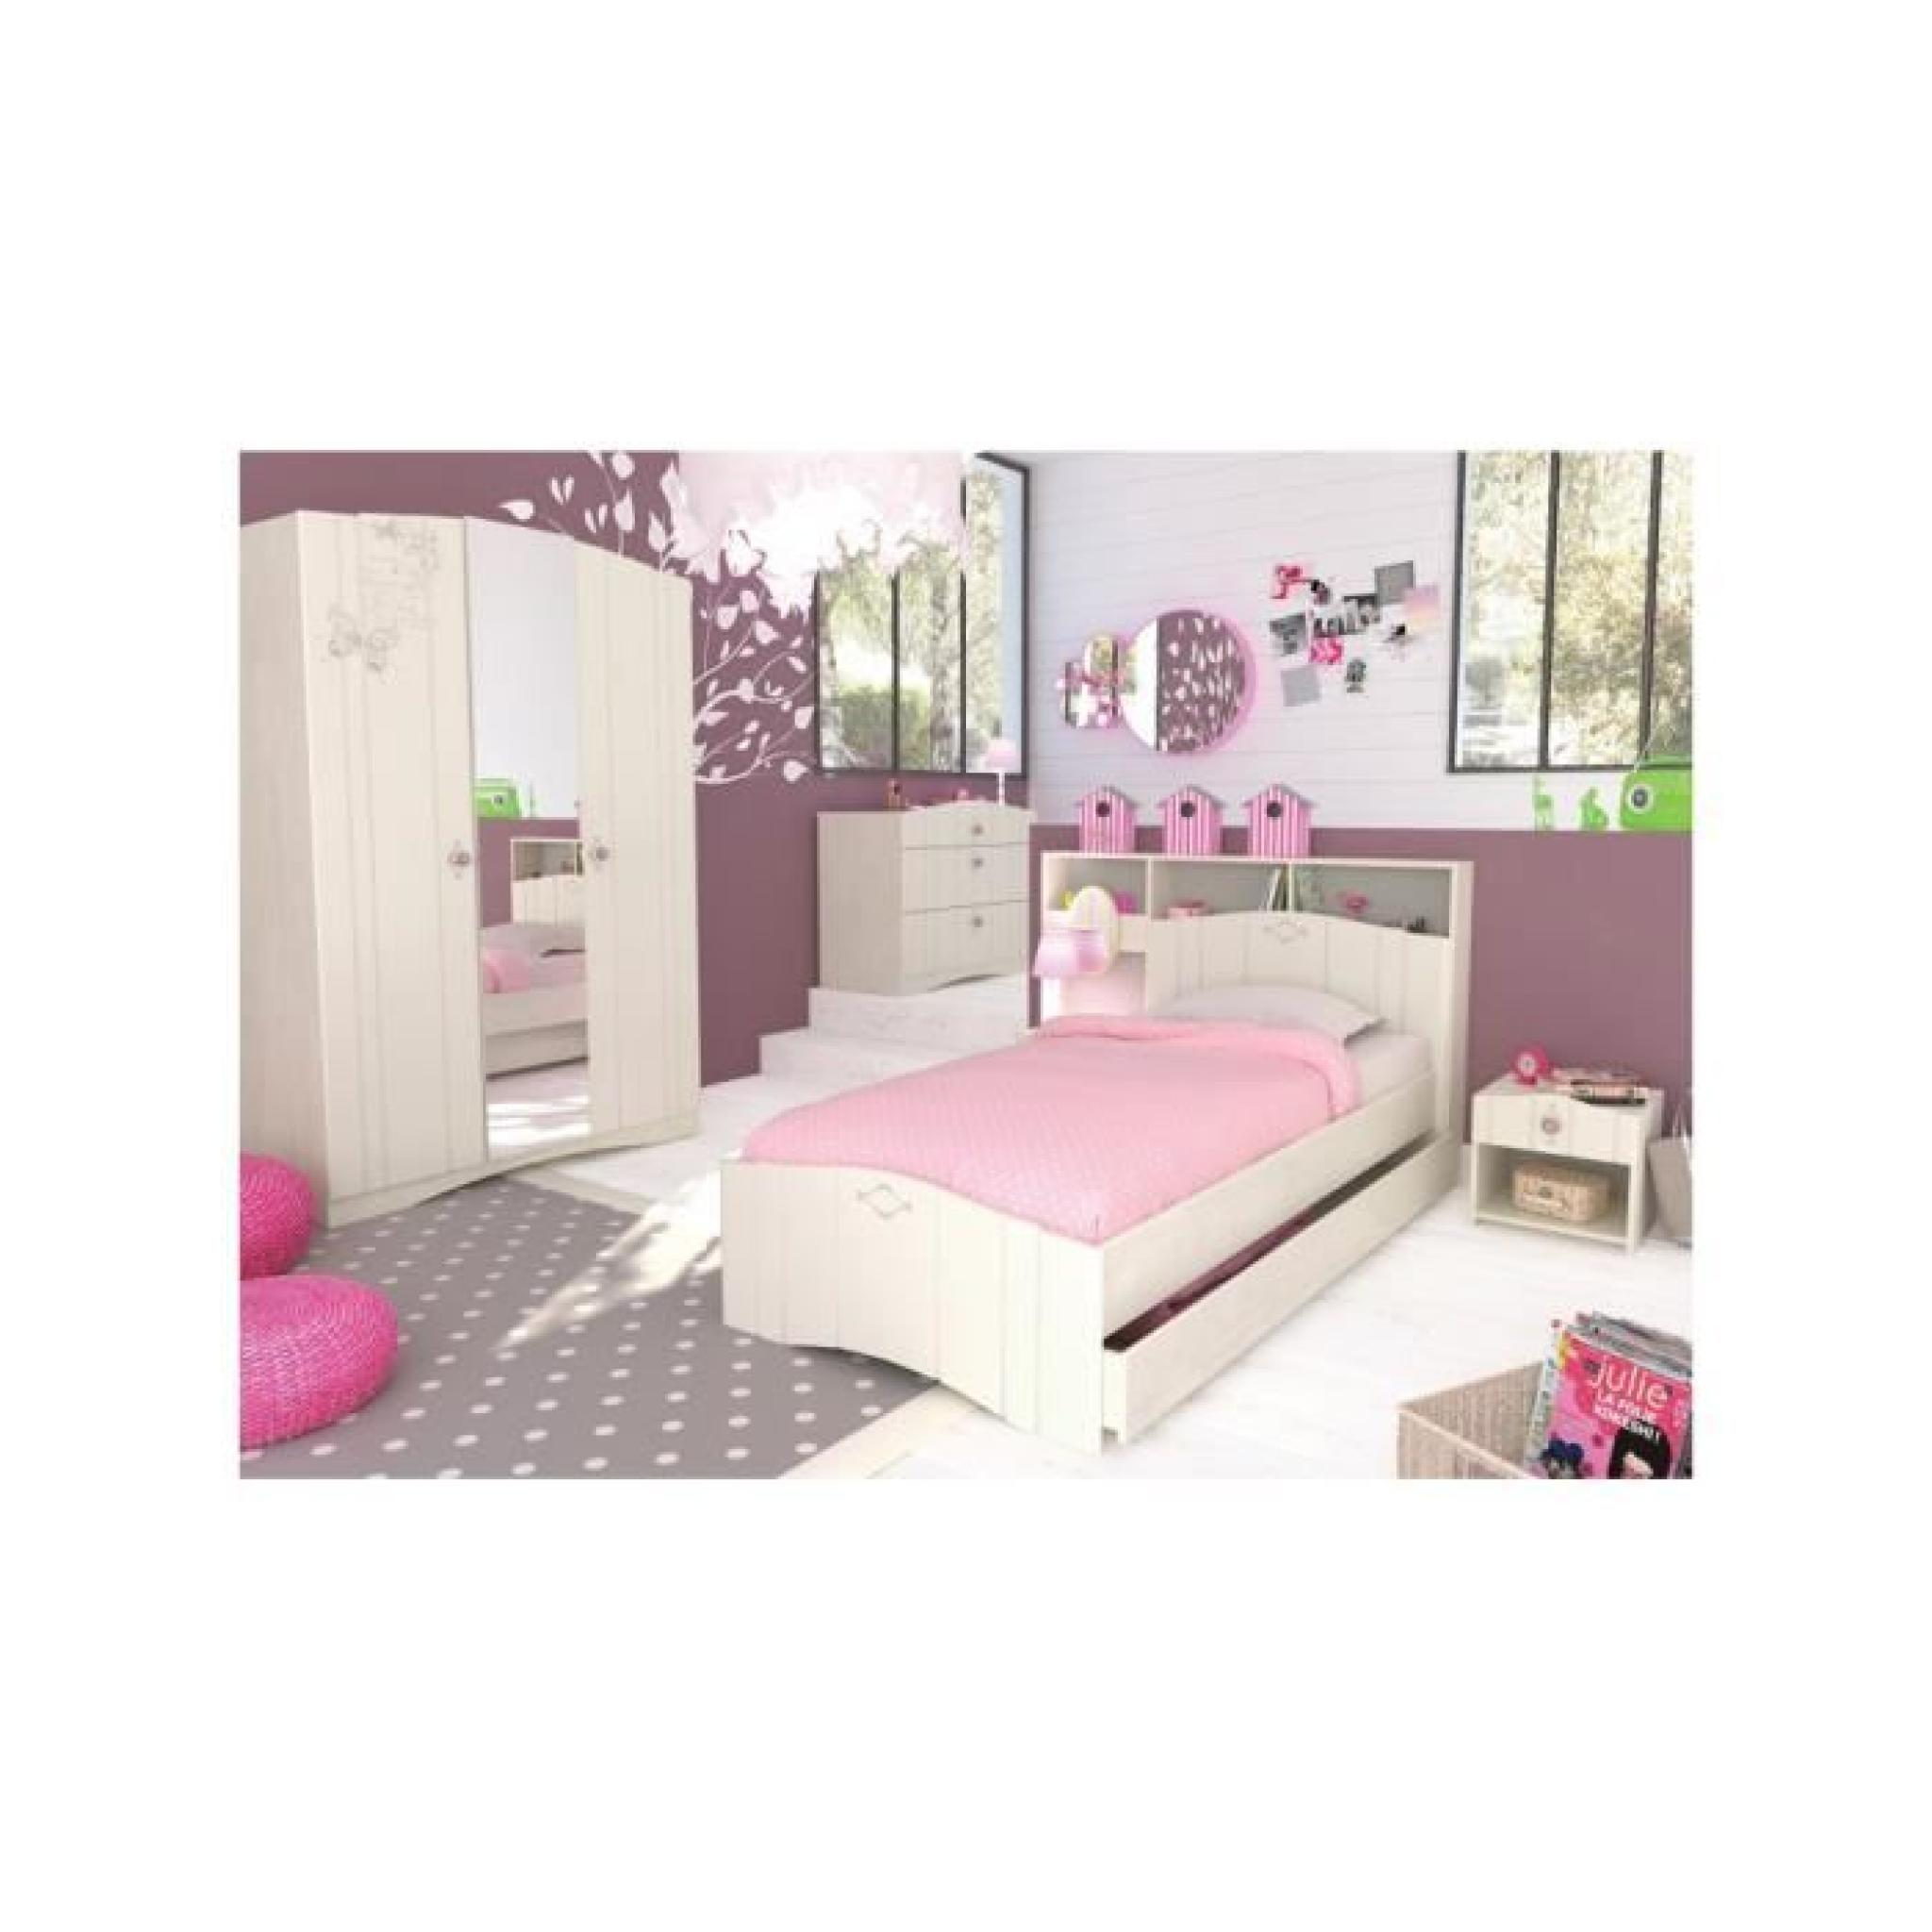 armoire pont de lit enfant blanc cass avec miroir 5 niches 1 tiroir achat vente armoire de. Black Bedroom Furniture Sets. Home Design Ideas